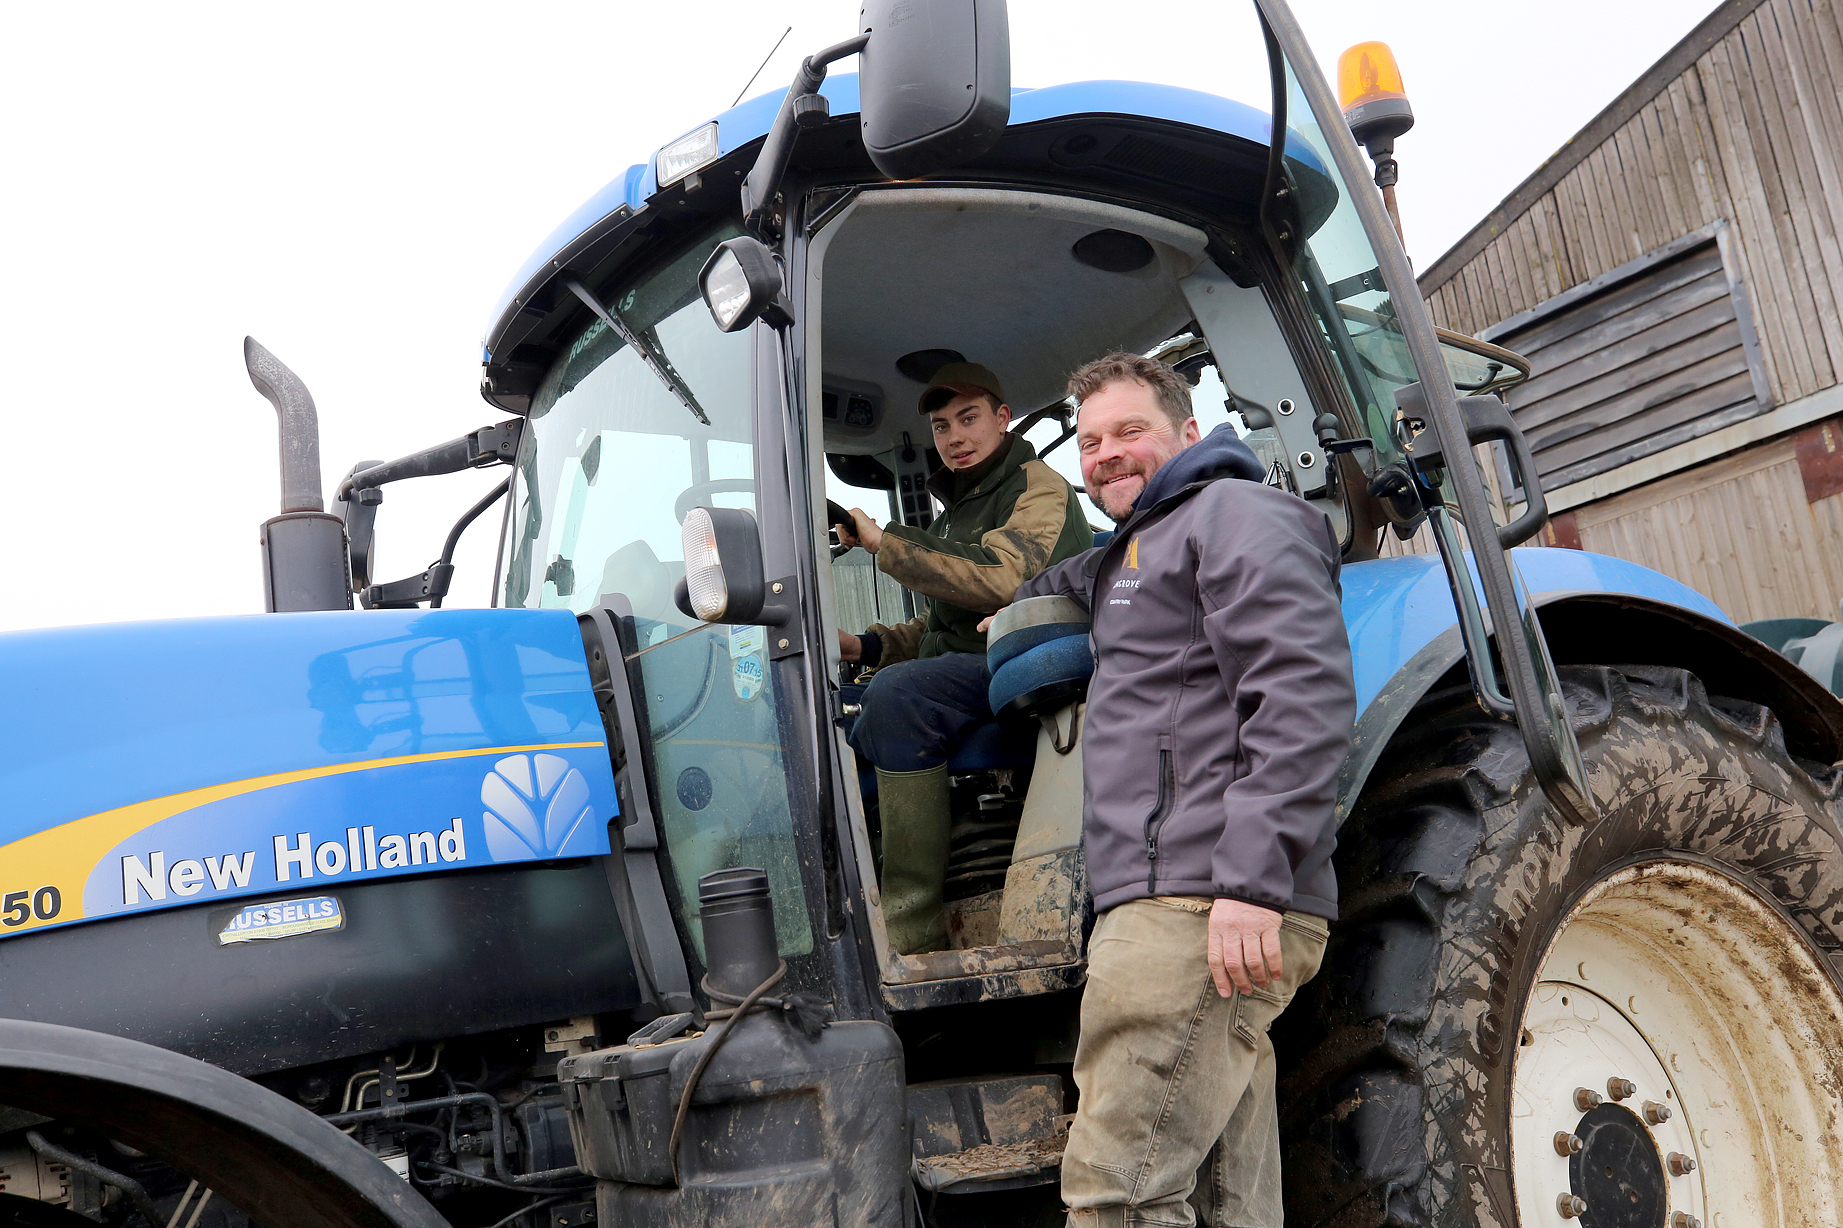 GRANTS: Apprentice Matthew Cook at work with Alan Petch at Angrove Farms in Great Ayton – one of the businesses helped by the Hambleton scheme.